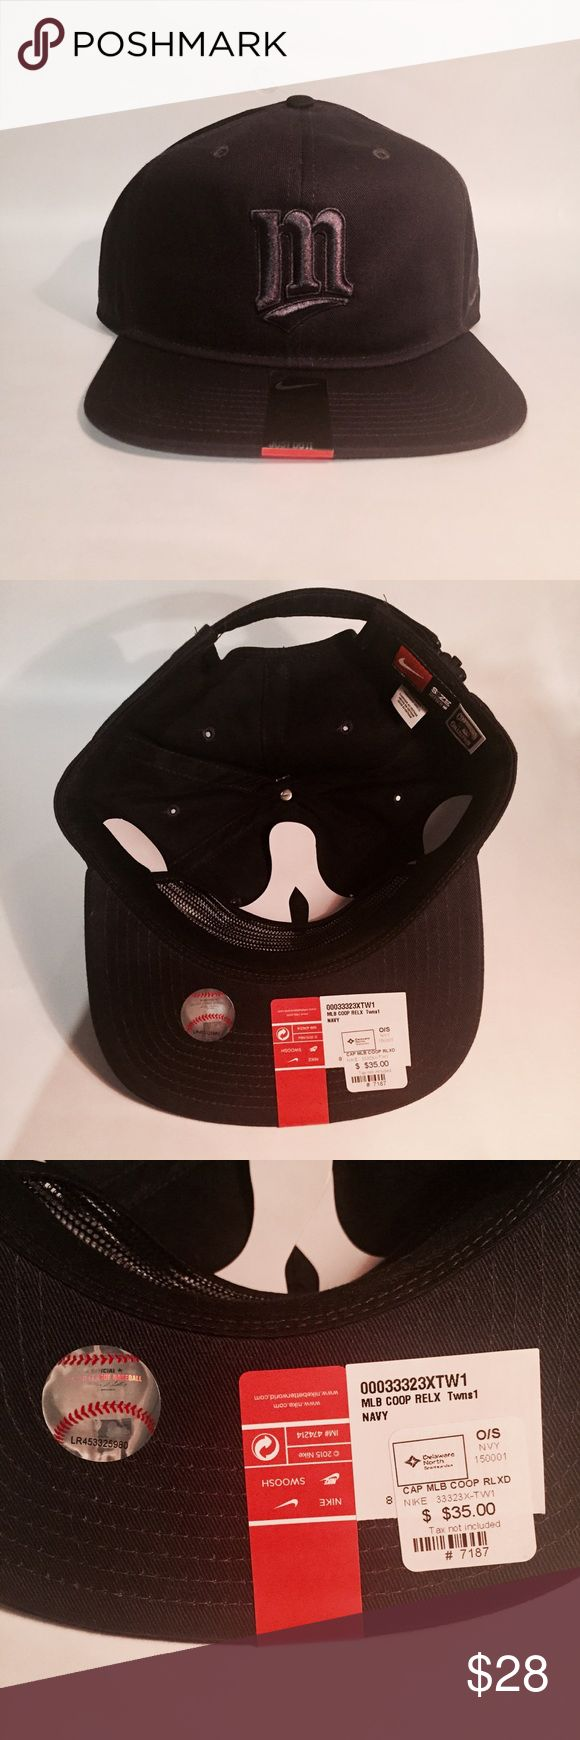 """Nike MLB MN Twins baseball cap NWT MLB Minnesota Twins baseball cap. Unisex. Color is dark navy, looks black in photos. Monochrome, everything on the hat is navy, including the stitched """"M"""" logo on the front. One size, adjustable. Nike Accessories Hats"""